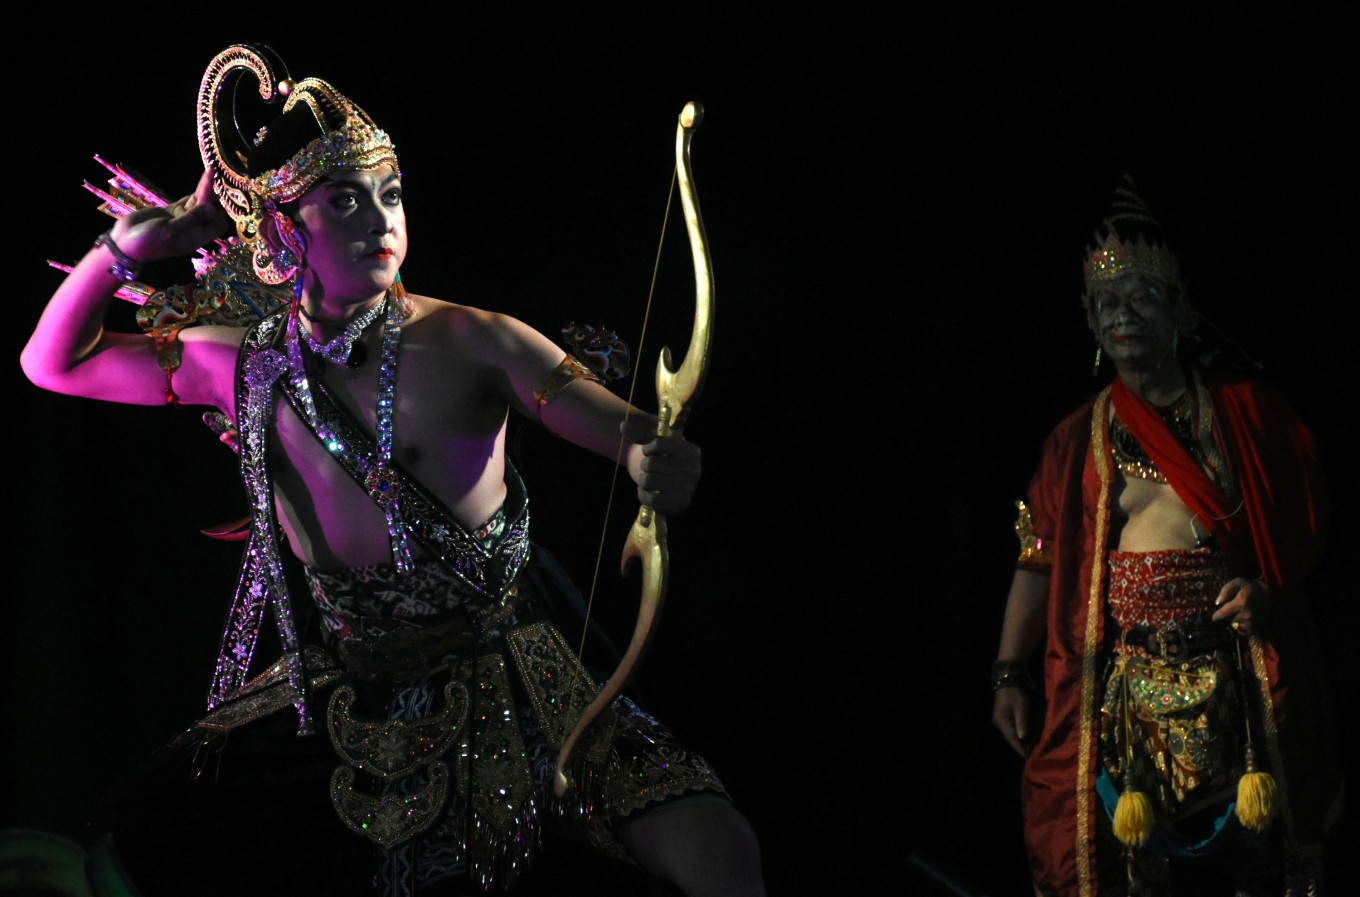 A 'wayang orang' artist reaches for an arrow during Saturday's performance of 'Sang Putra Kunti' in Malang, East Java. Although 'wayang orang penget' is different from 'wayang orang', the traditional theatrical form still adapts tales from the 'Mahabharata' or 'Ramayana'.